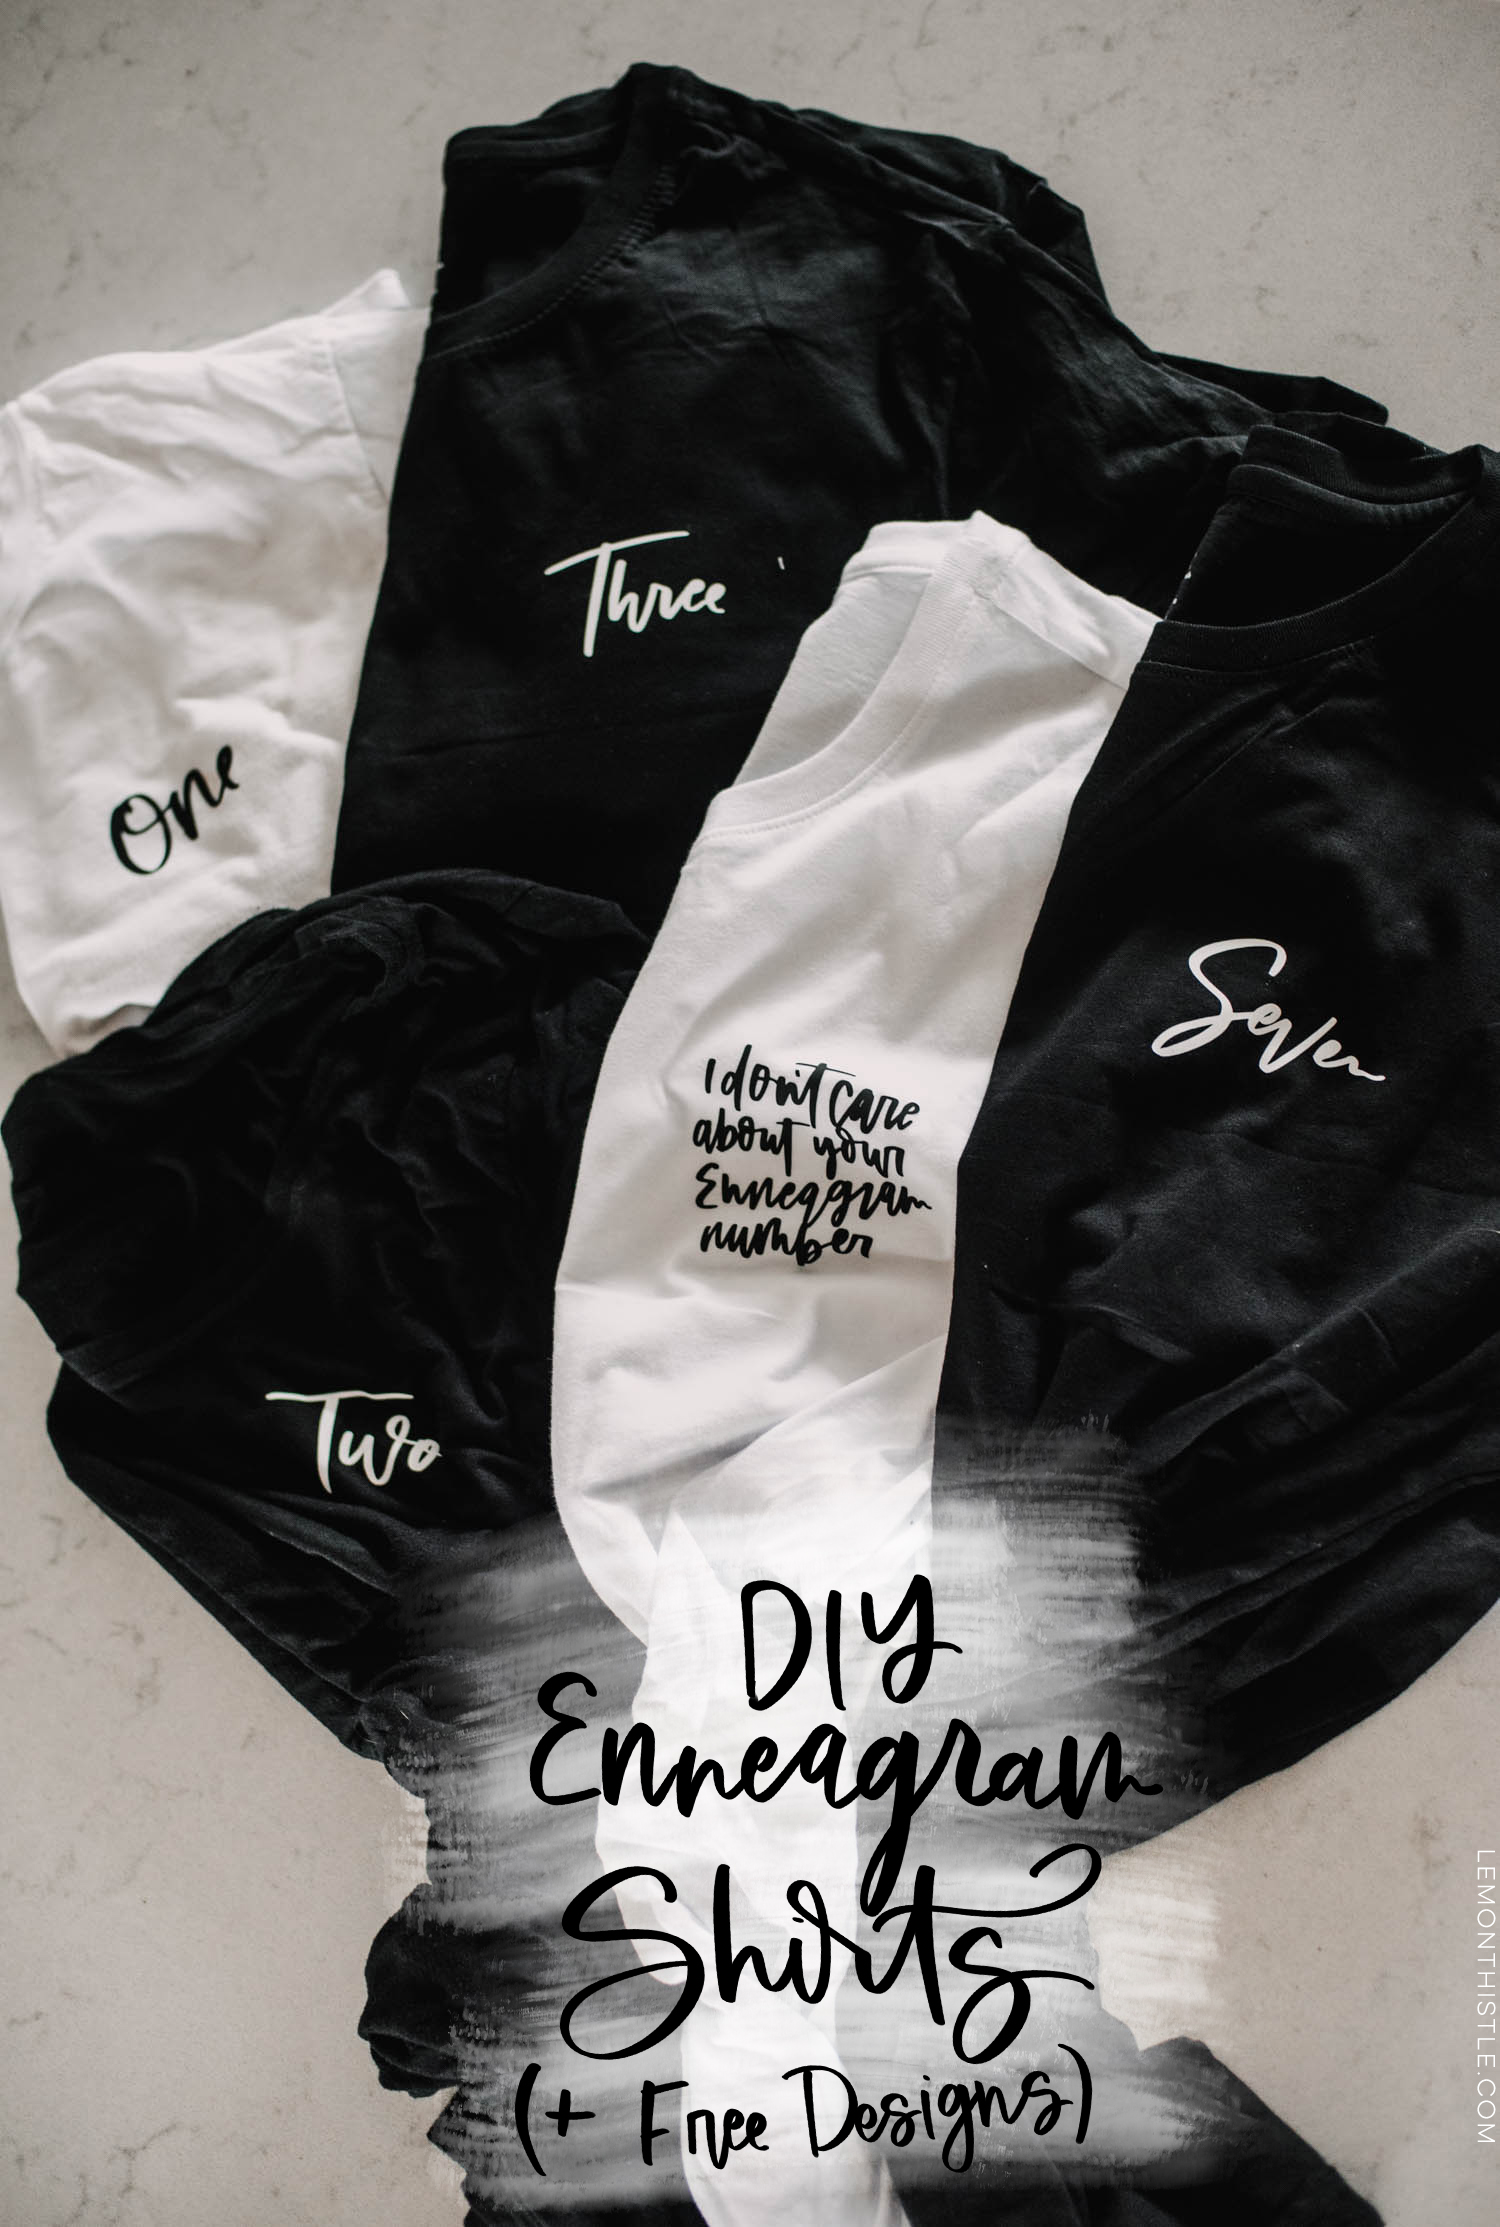 DIY Enneagram Shirts + Free Designs